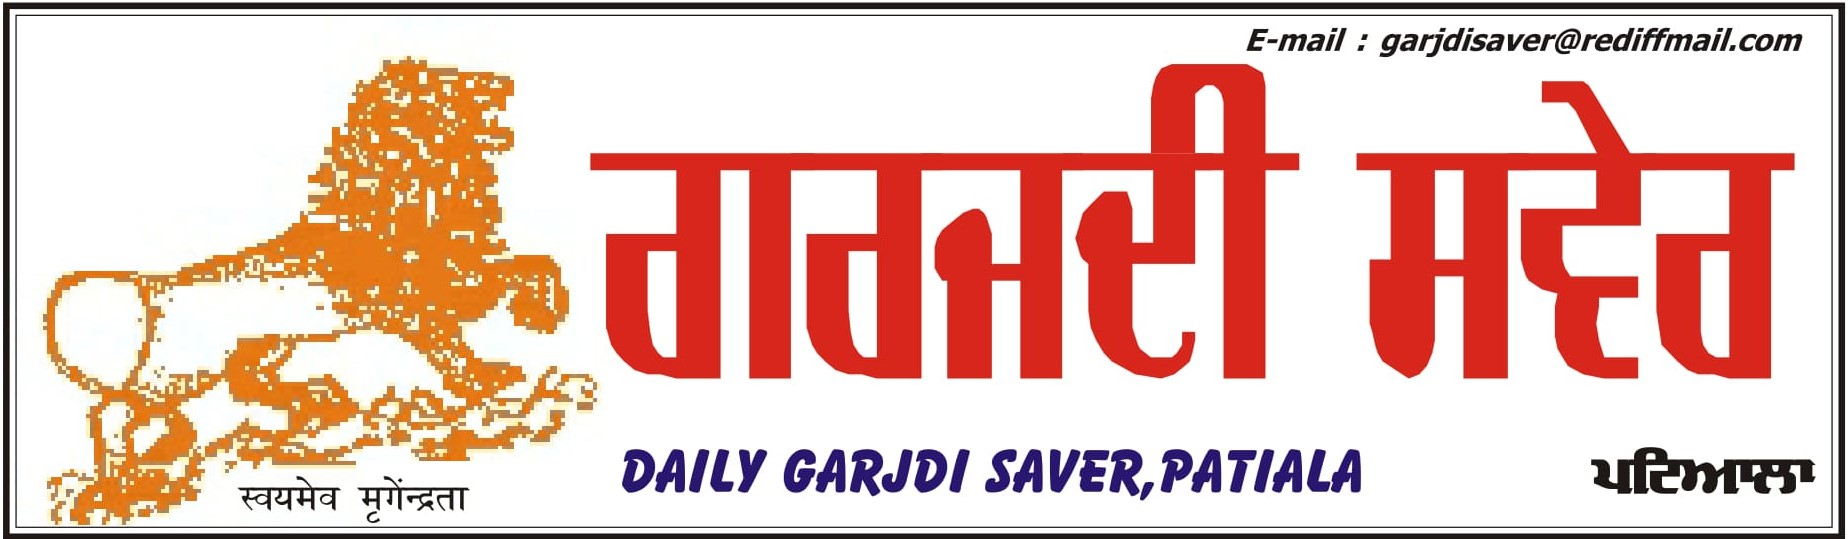 Newspaper/Garjdi_Saver.jpg